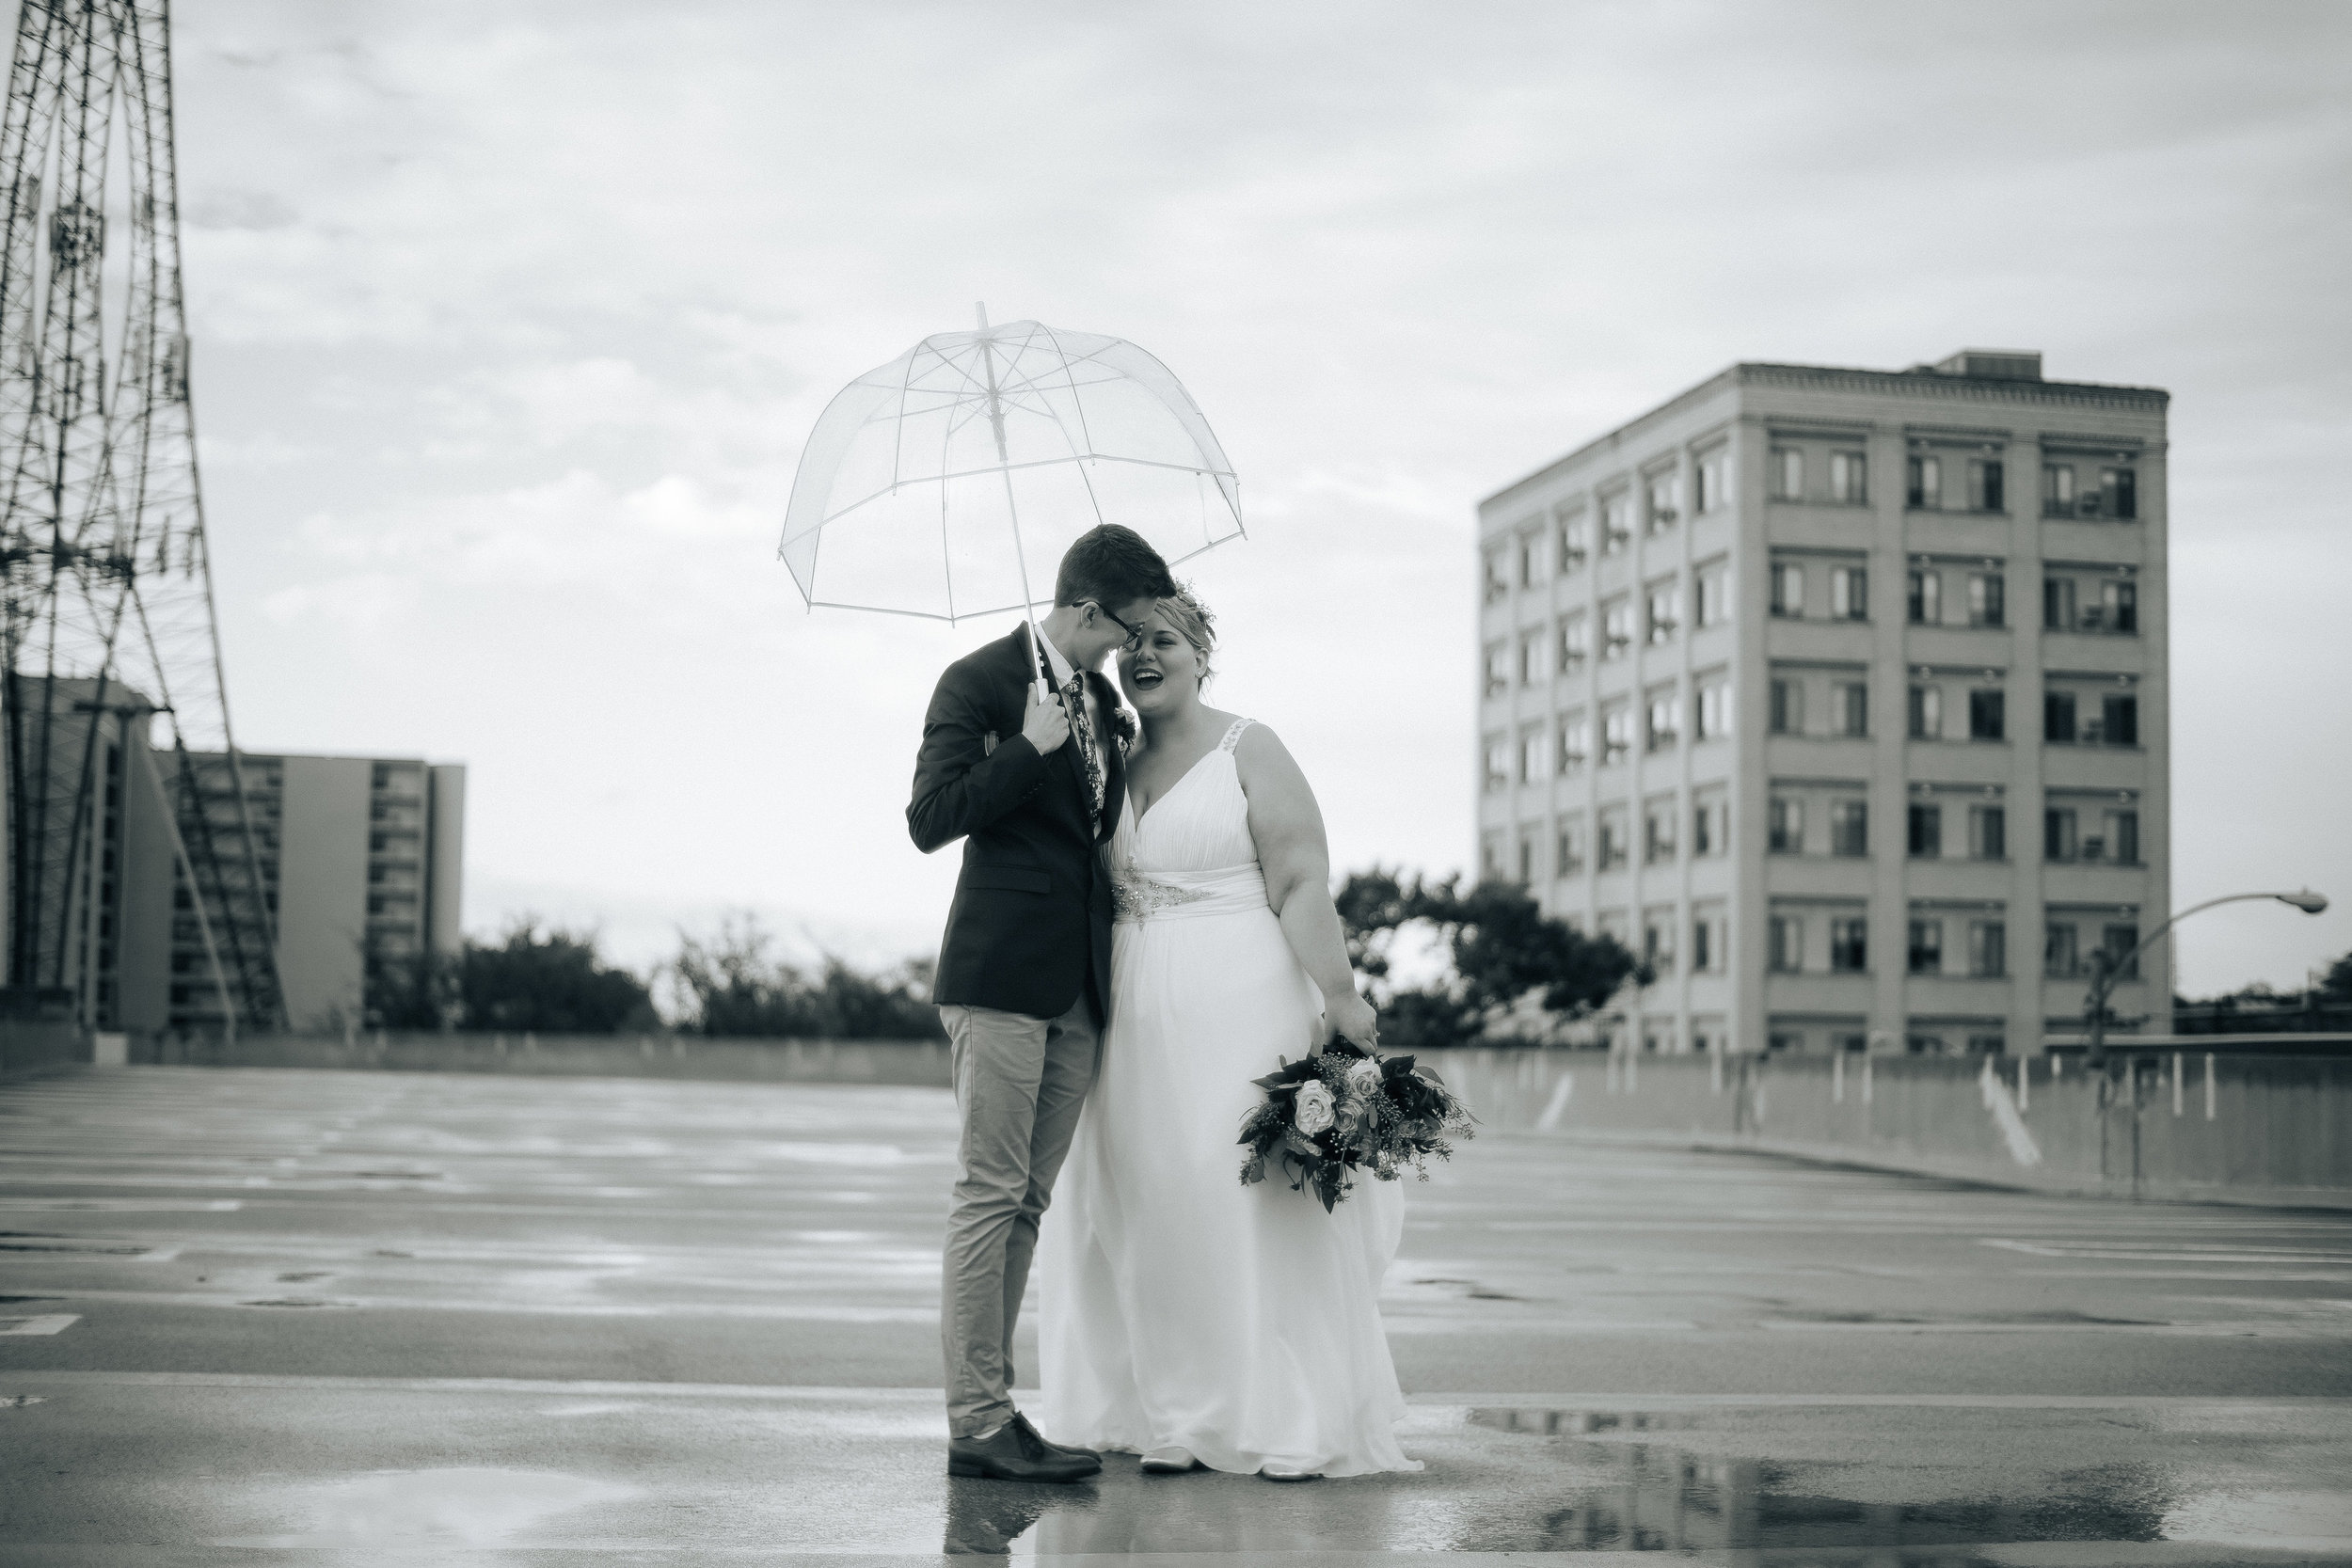 Wedding photo of my wife (on the left) and me (on the right) by Jordan Bauer.